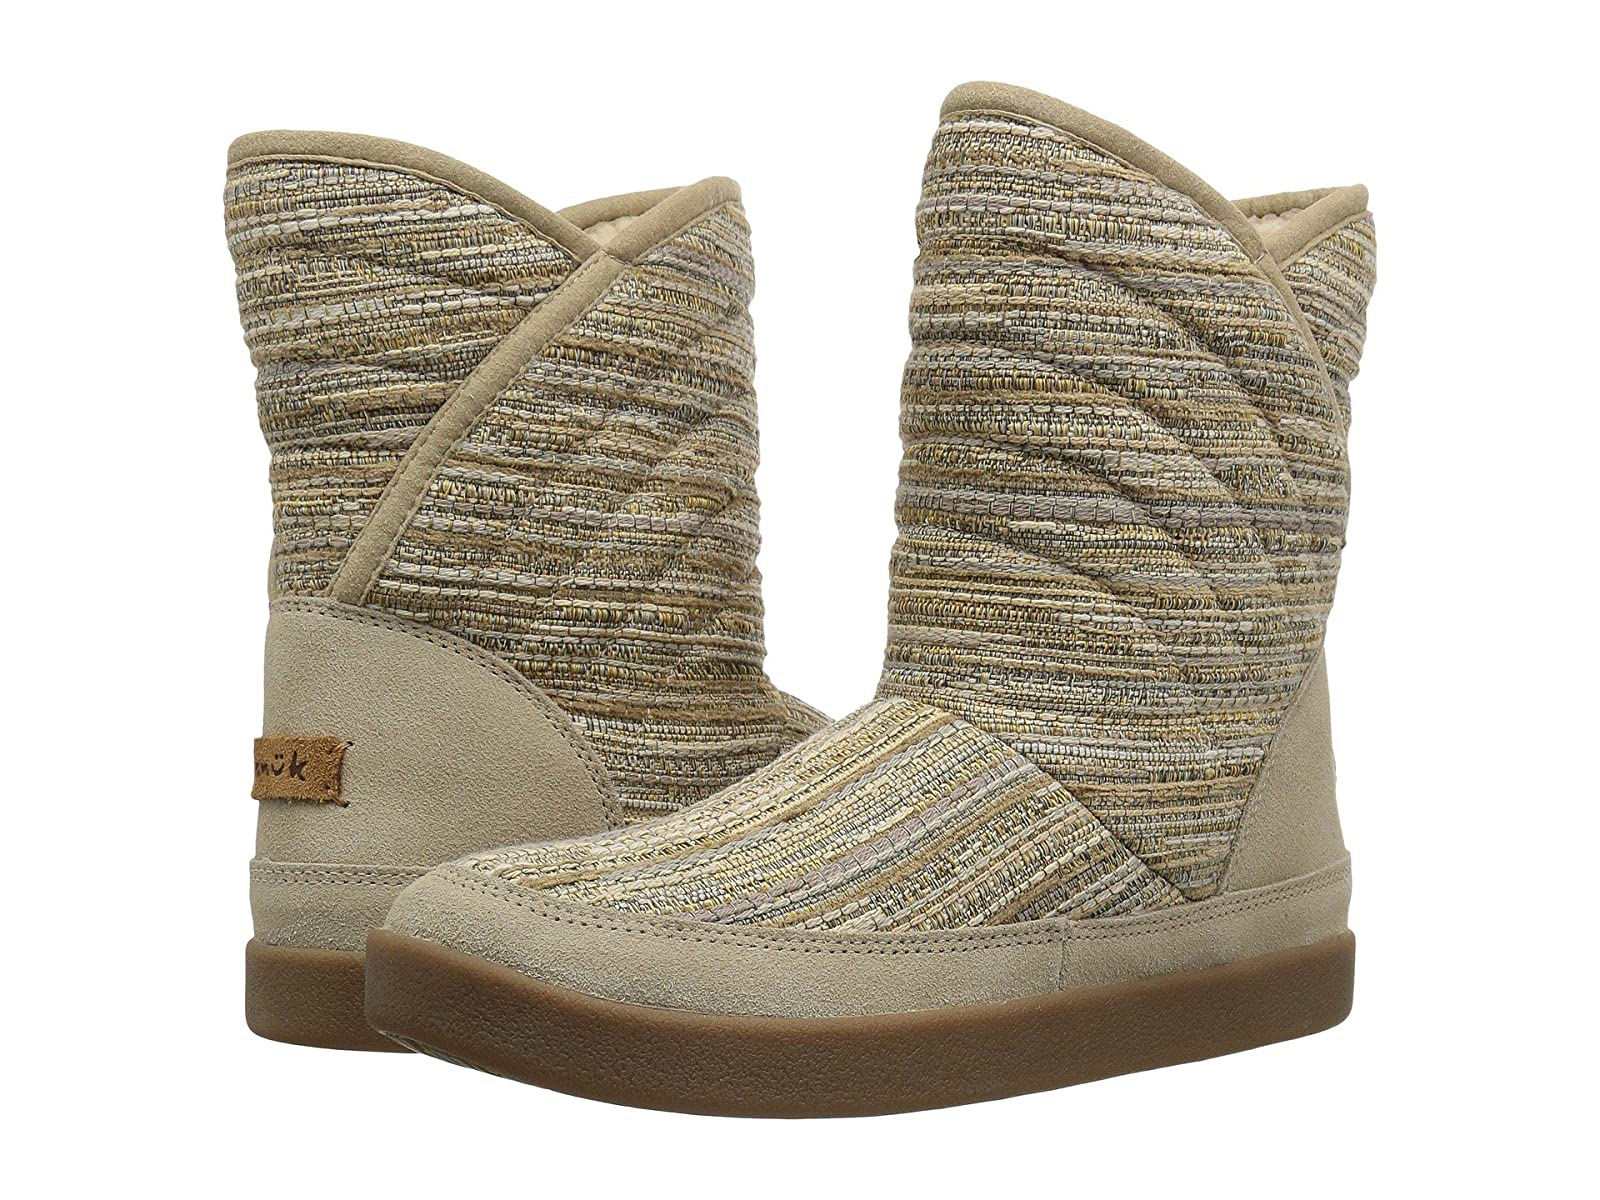 Sanuk Big BootahCheap and distinctive eye-catching shoes